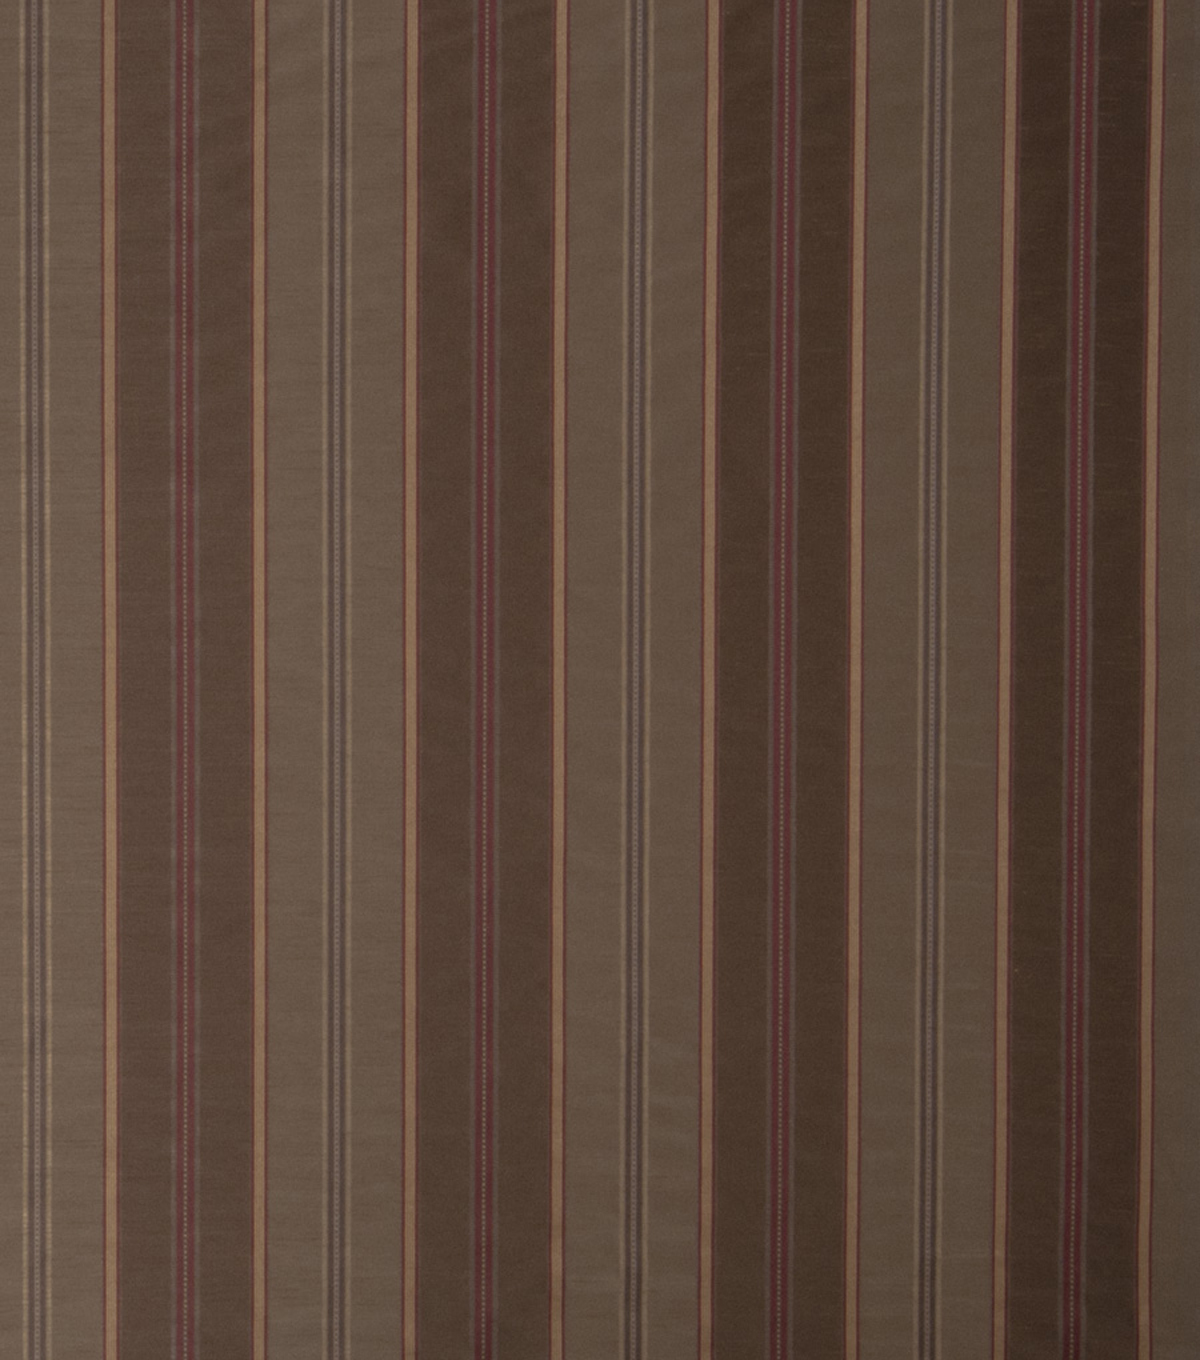 Home Decor 8\u0022x8\u0022 Fabric Swatch-SMC Designs Asiago / Mahogany